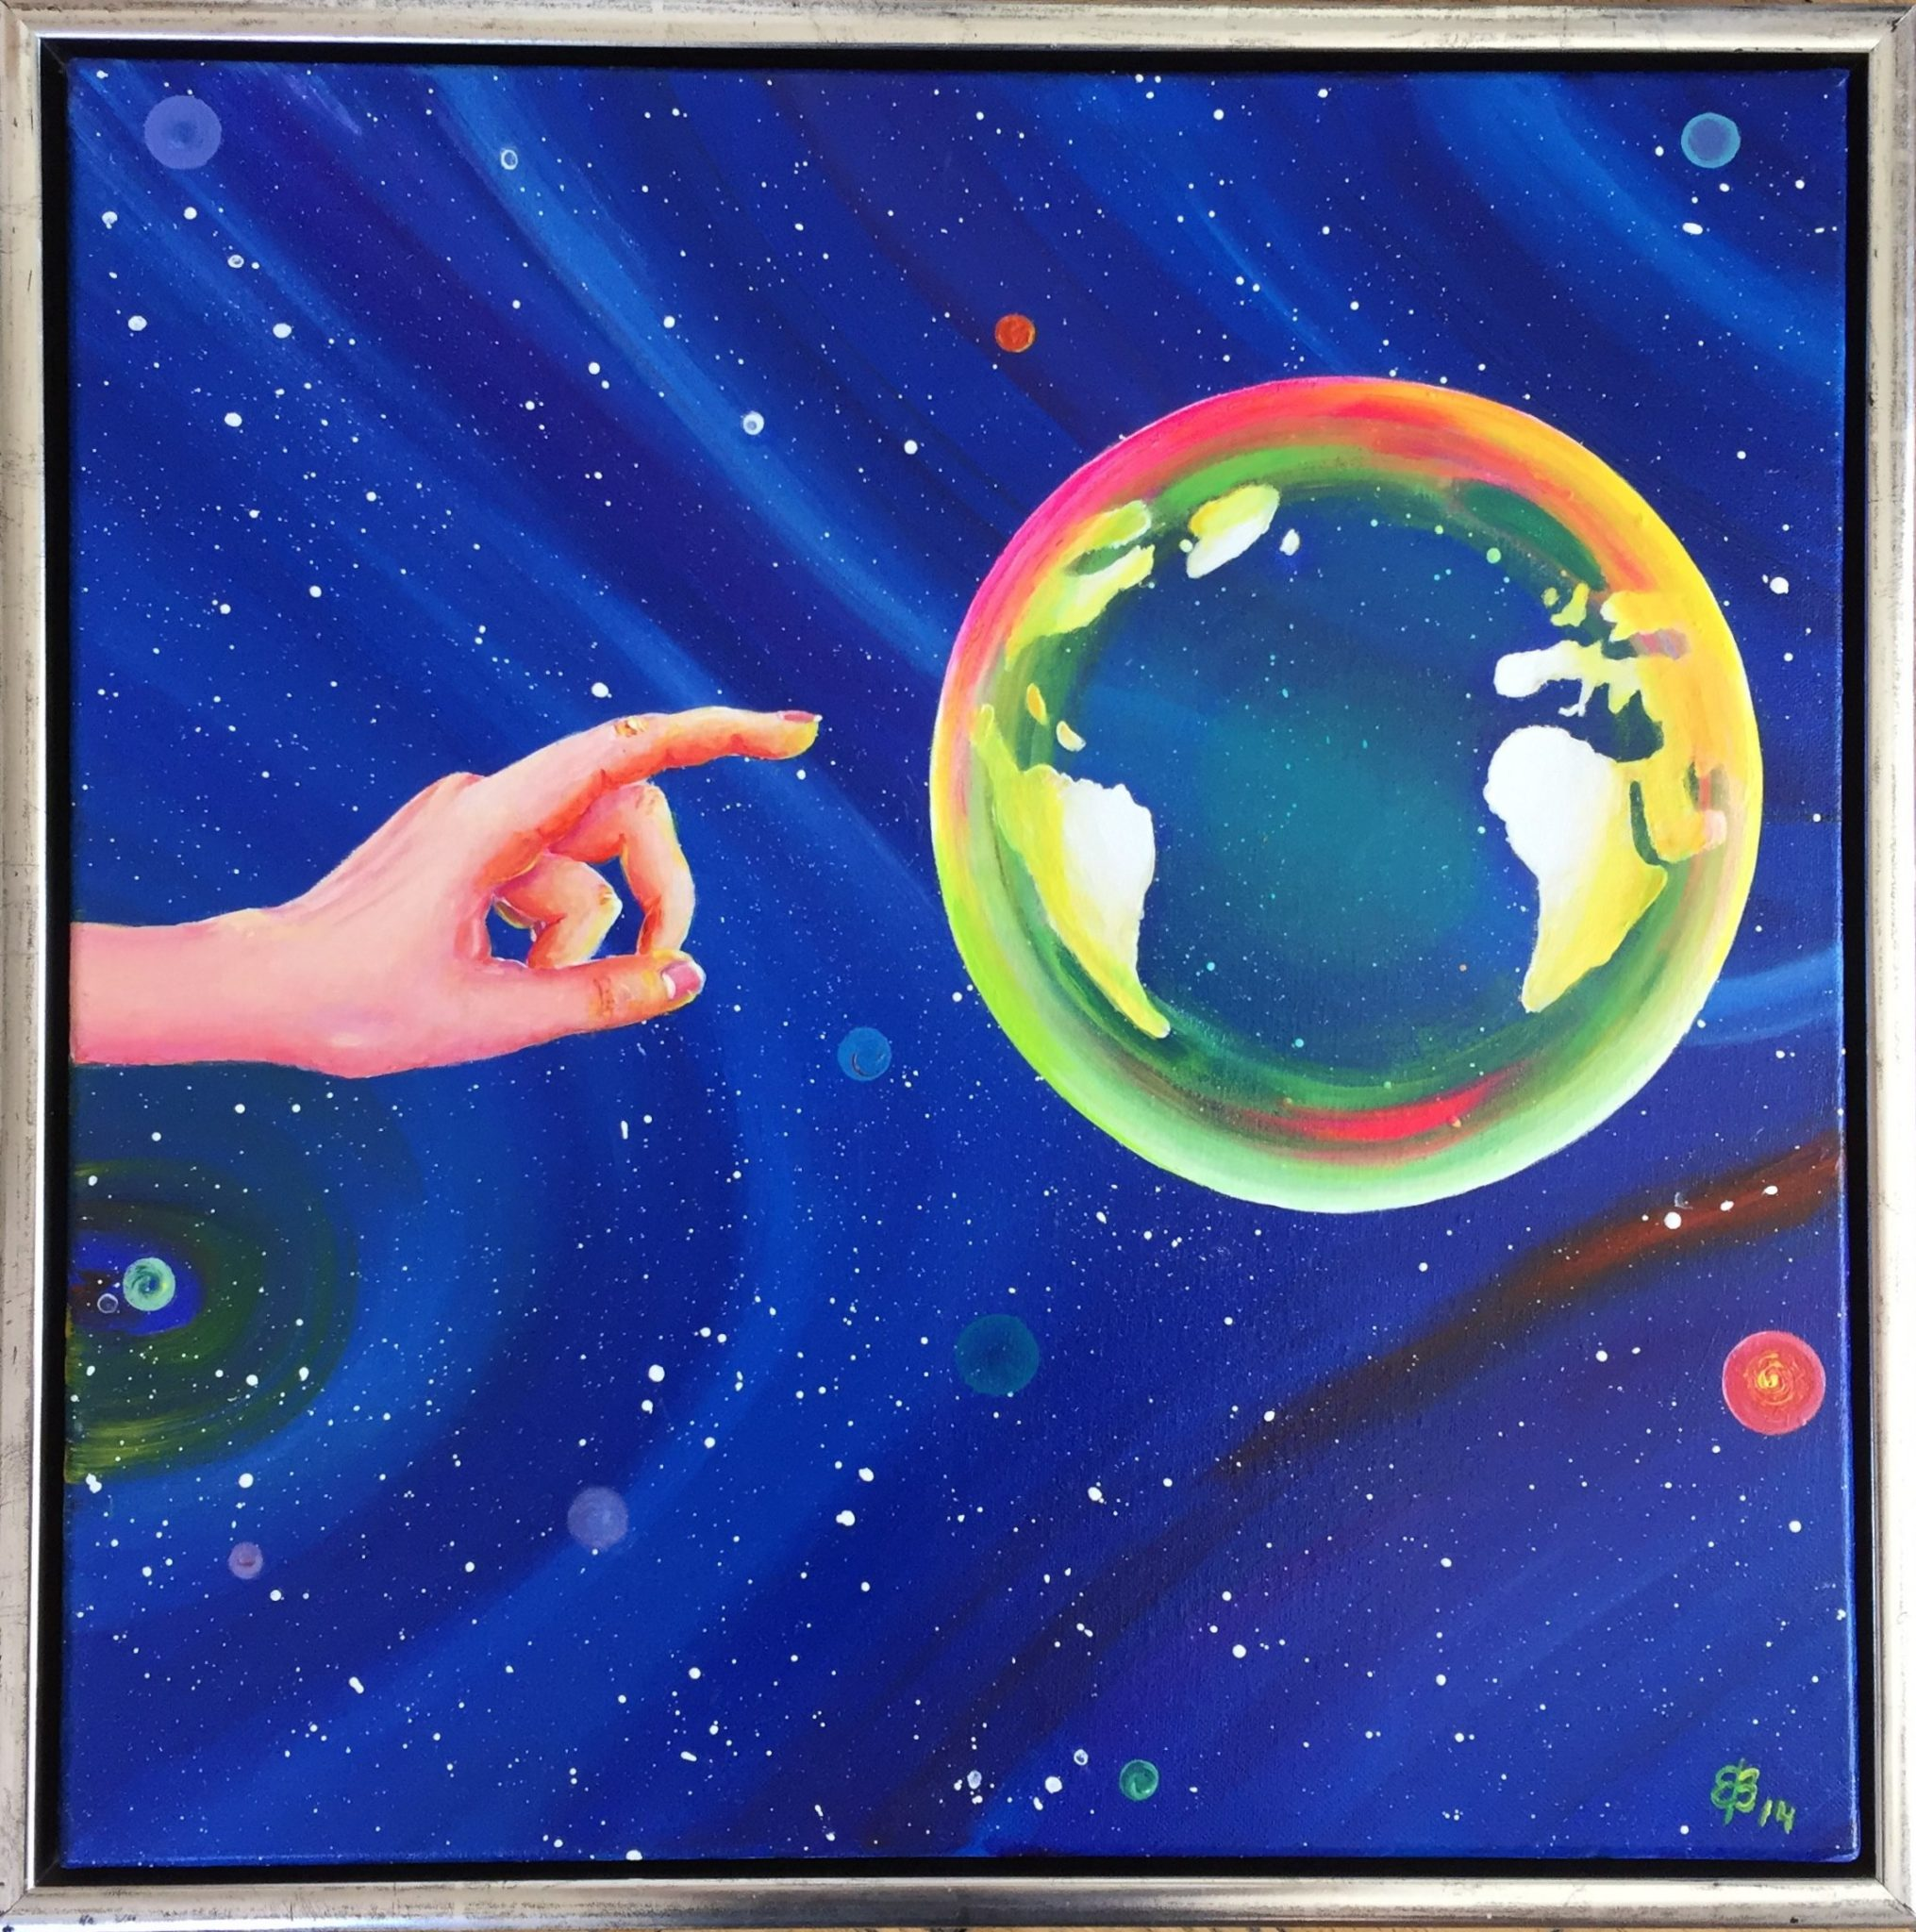 Soap Bubble depicted as our planet Earth